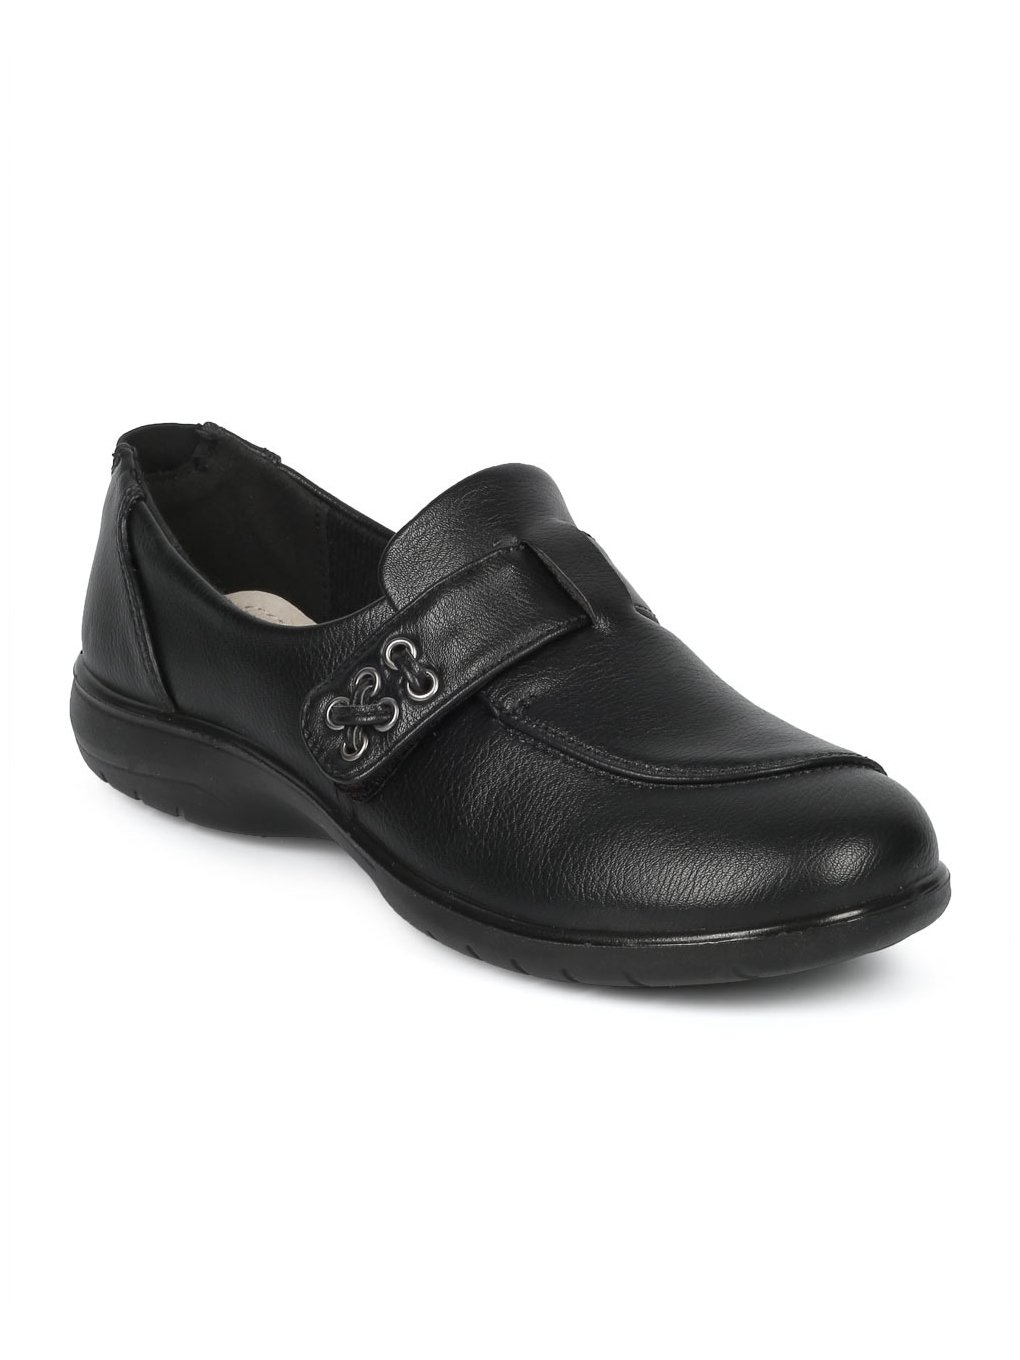 Alrisco Women Leatherette Belted Elevated Heel Working Loafer HD94 - Black Leatherette (Size: 8.5)